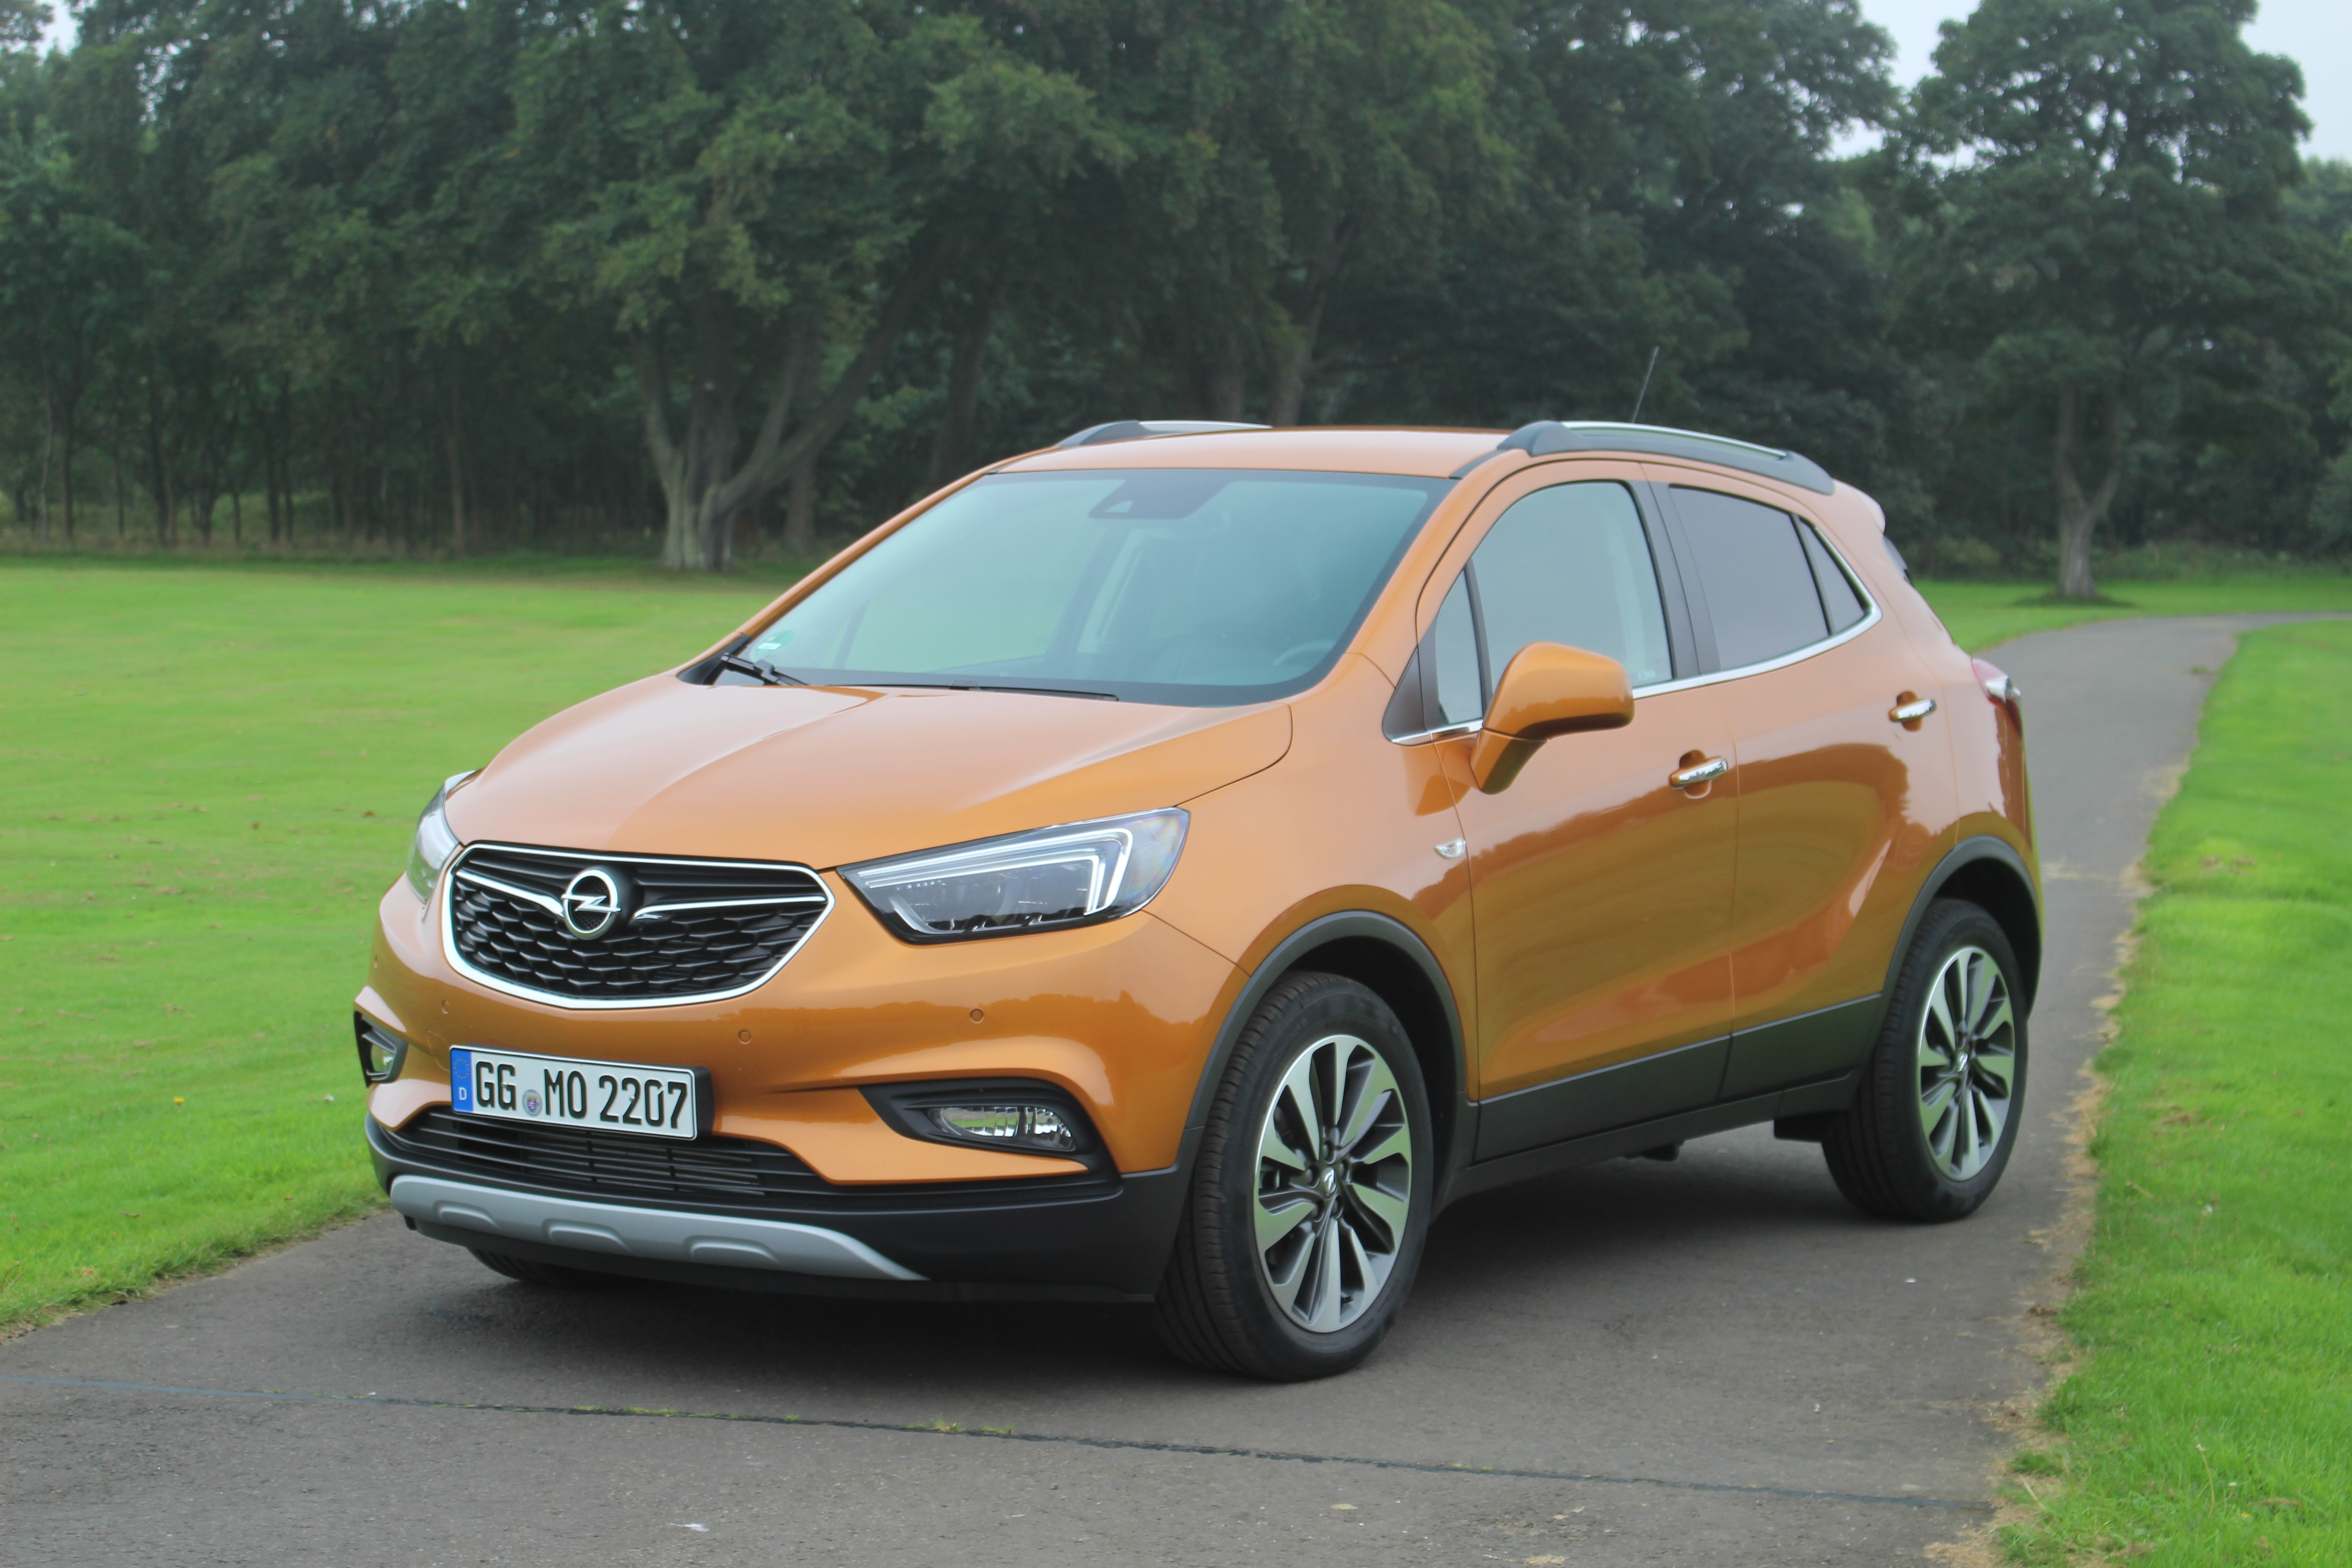 essai vid o opel mokka x 2016 what else. Black Bedroom Furniture Sets. Home Design Ideas